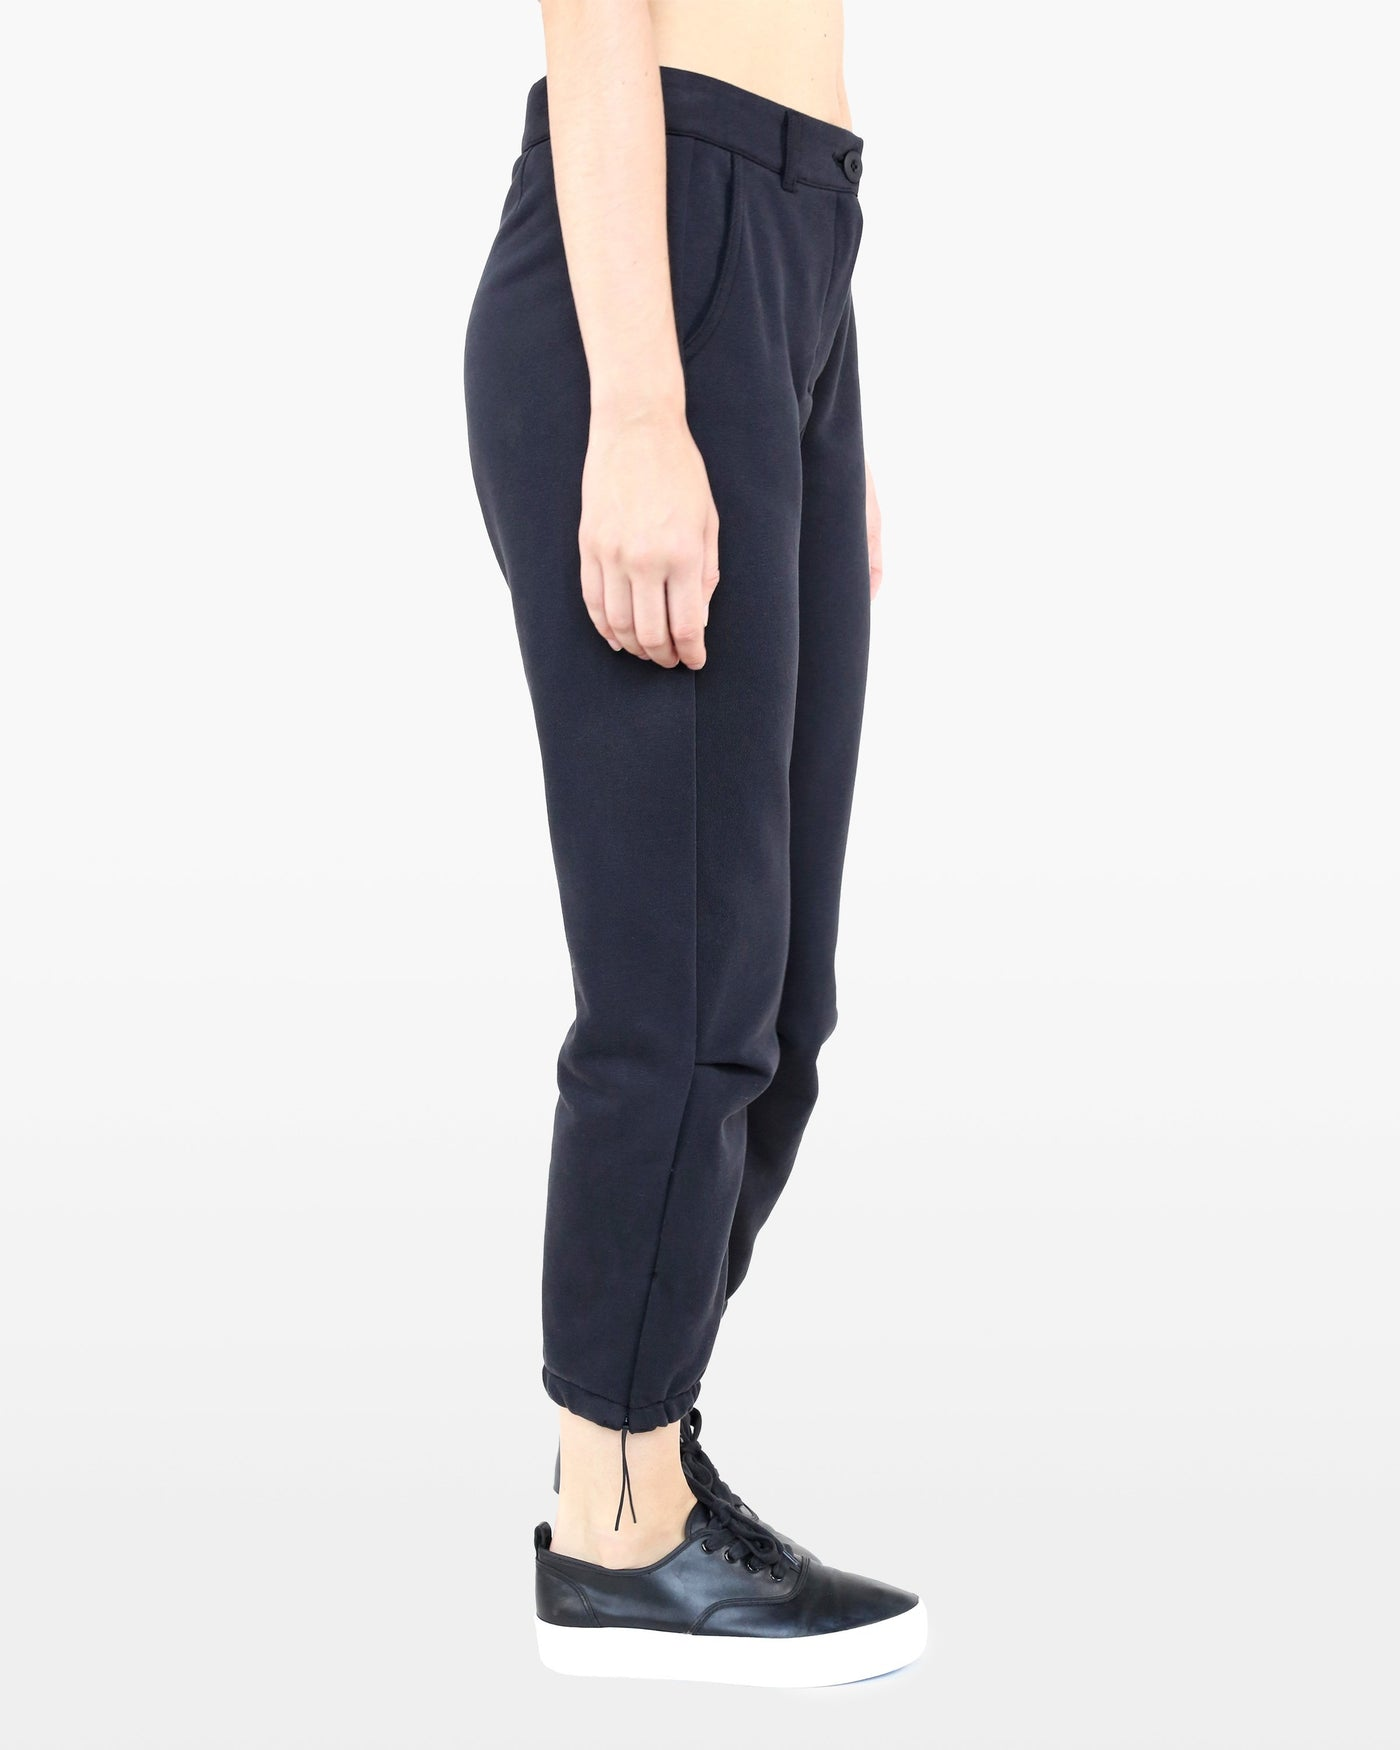 Lovelace Pant DFL in black